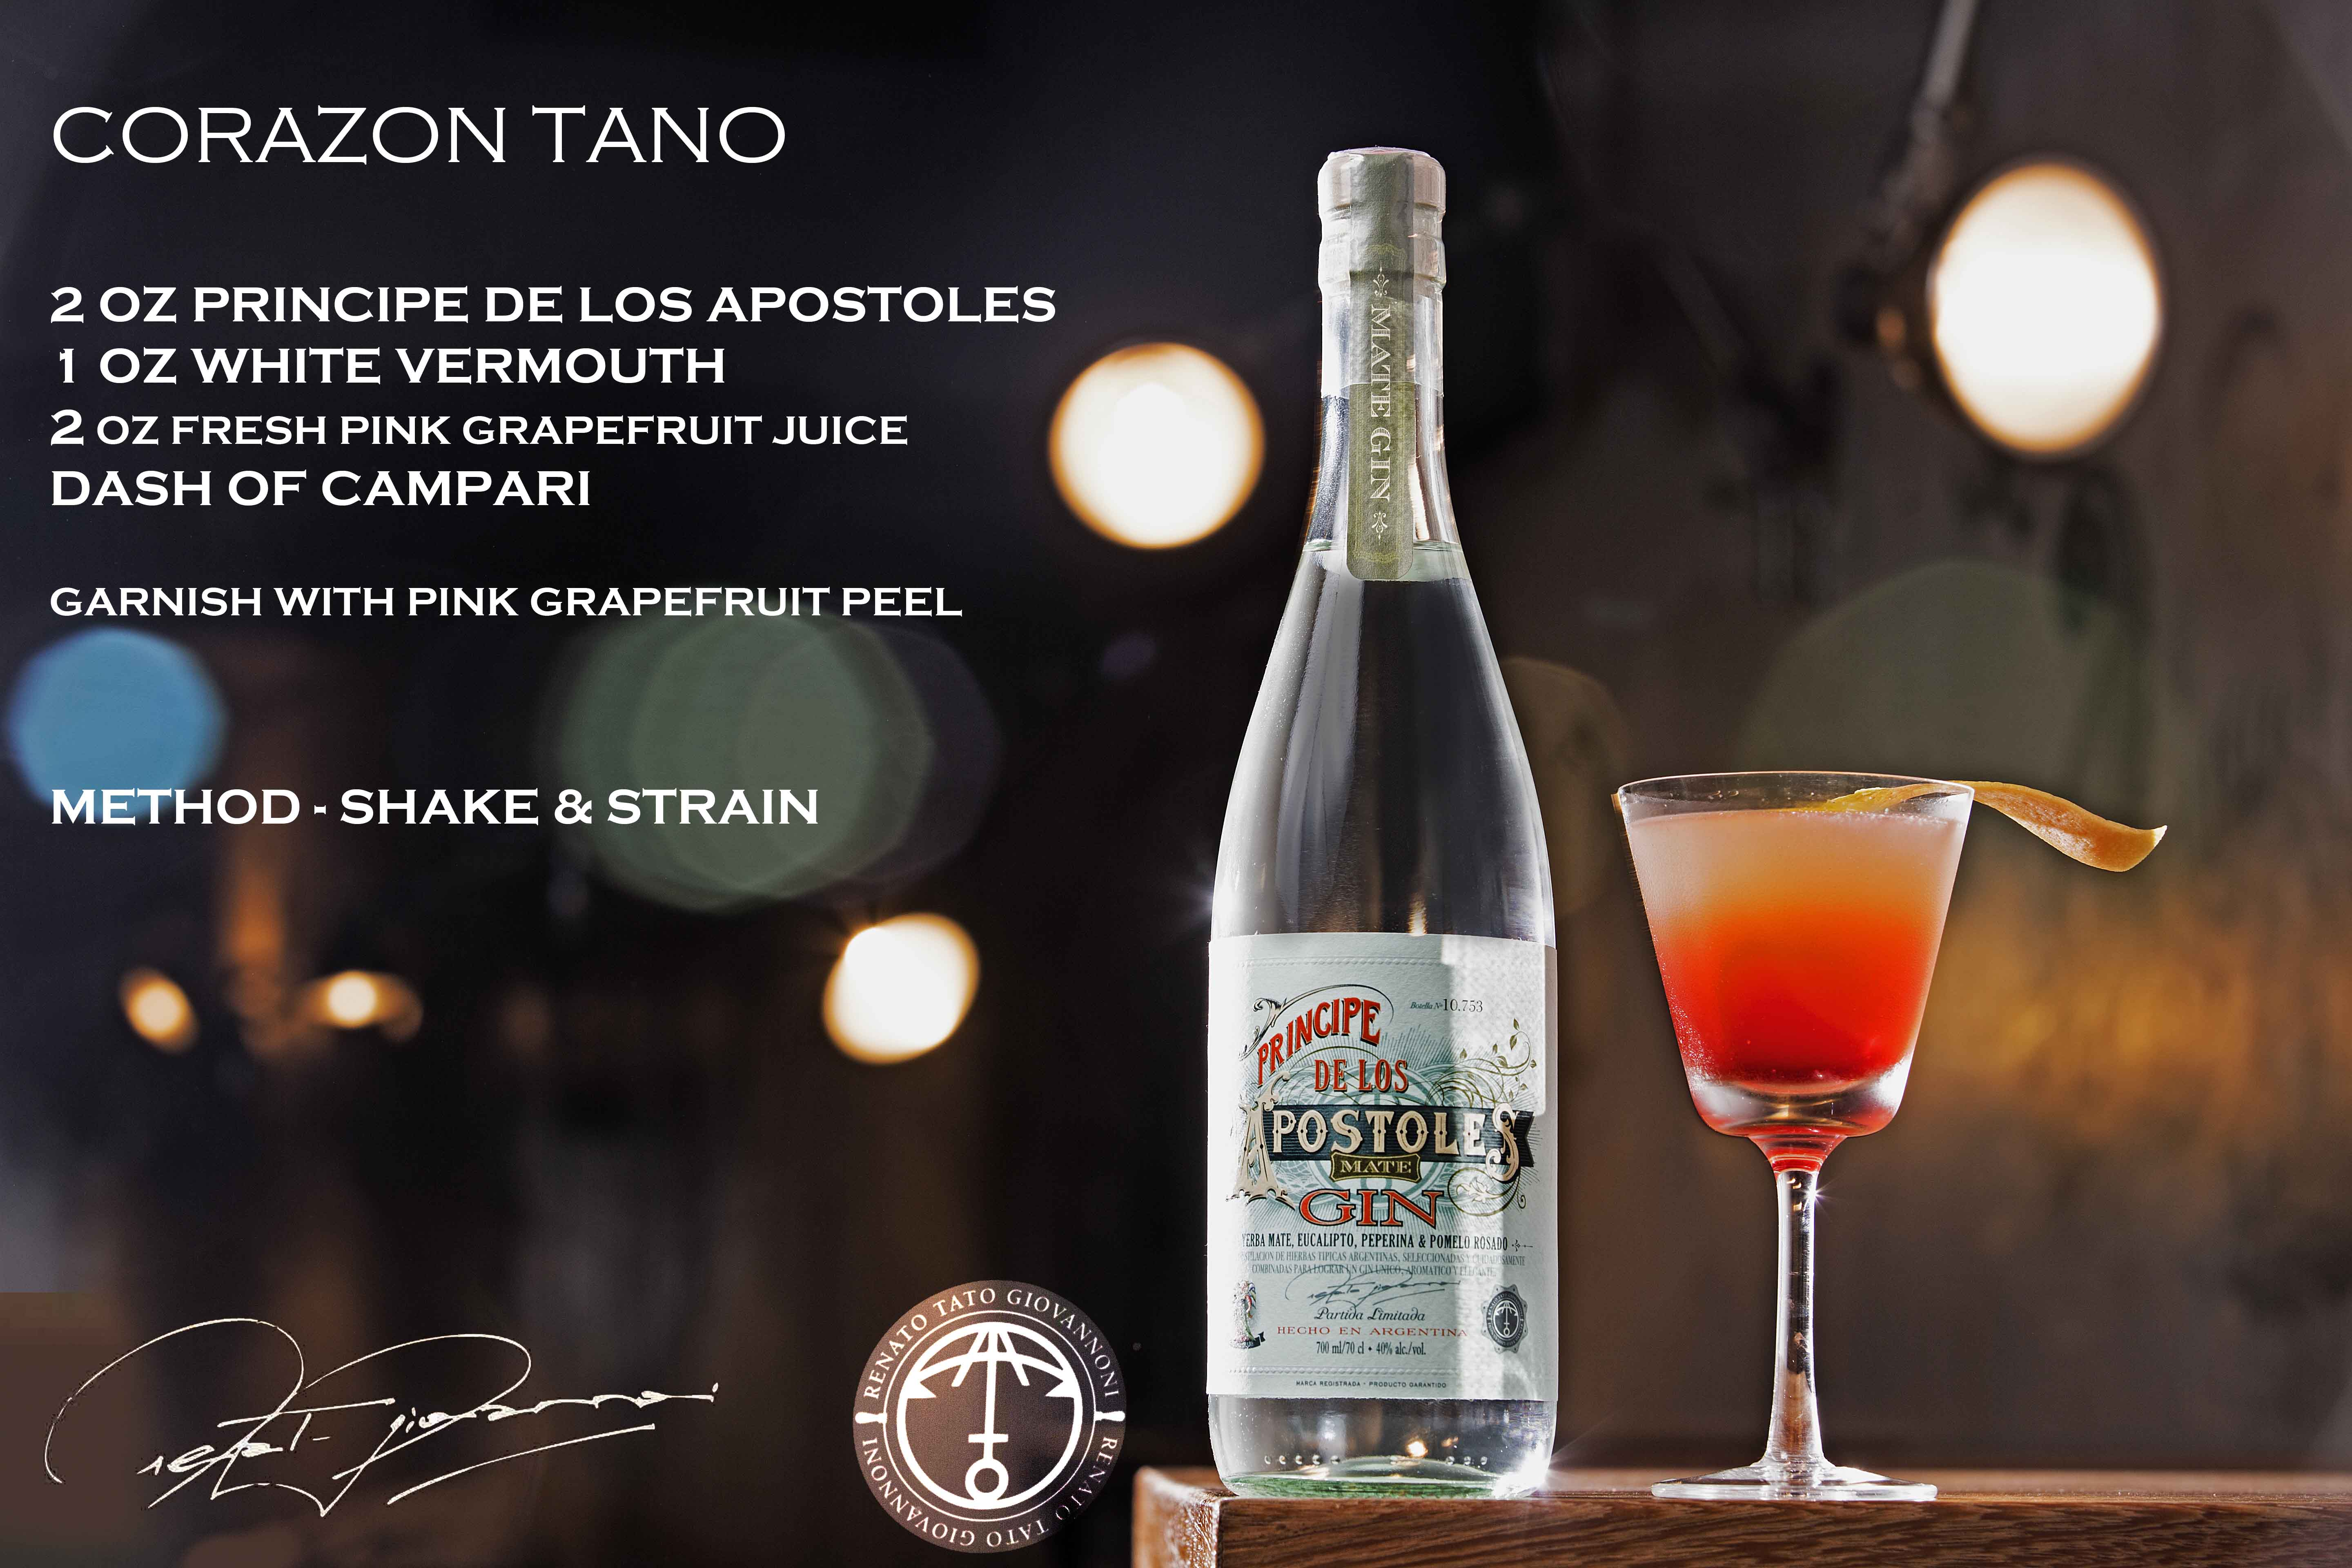 Corazon Tano - Apóstoles Cocktail